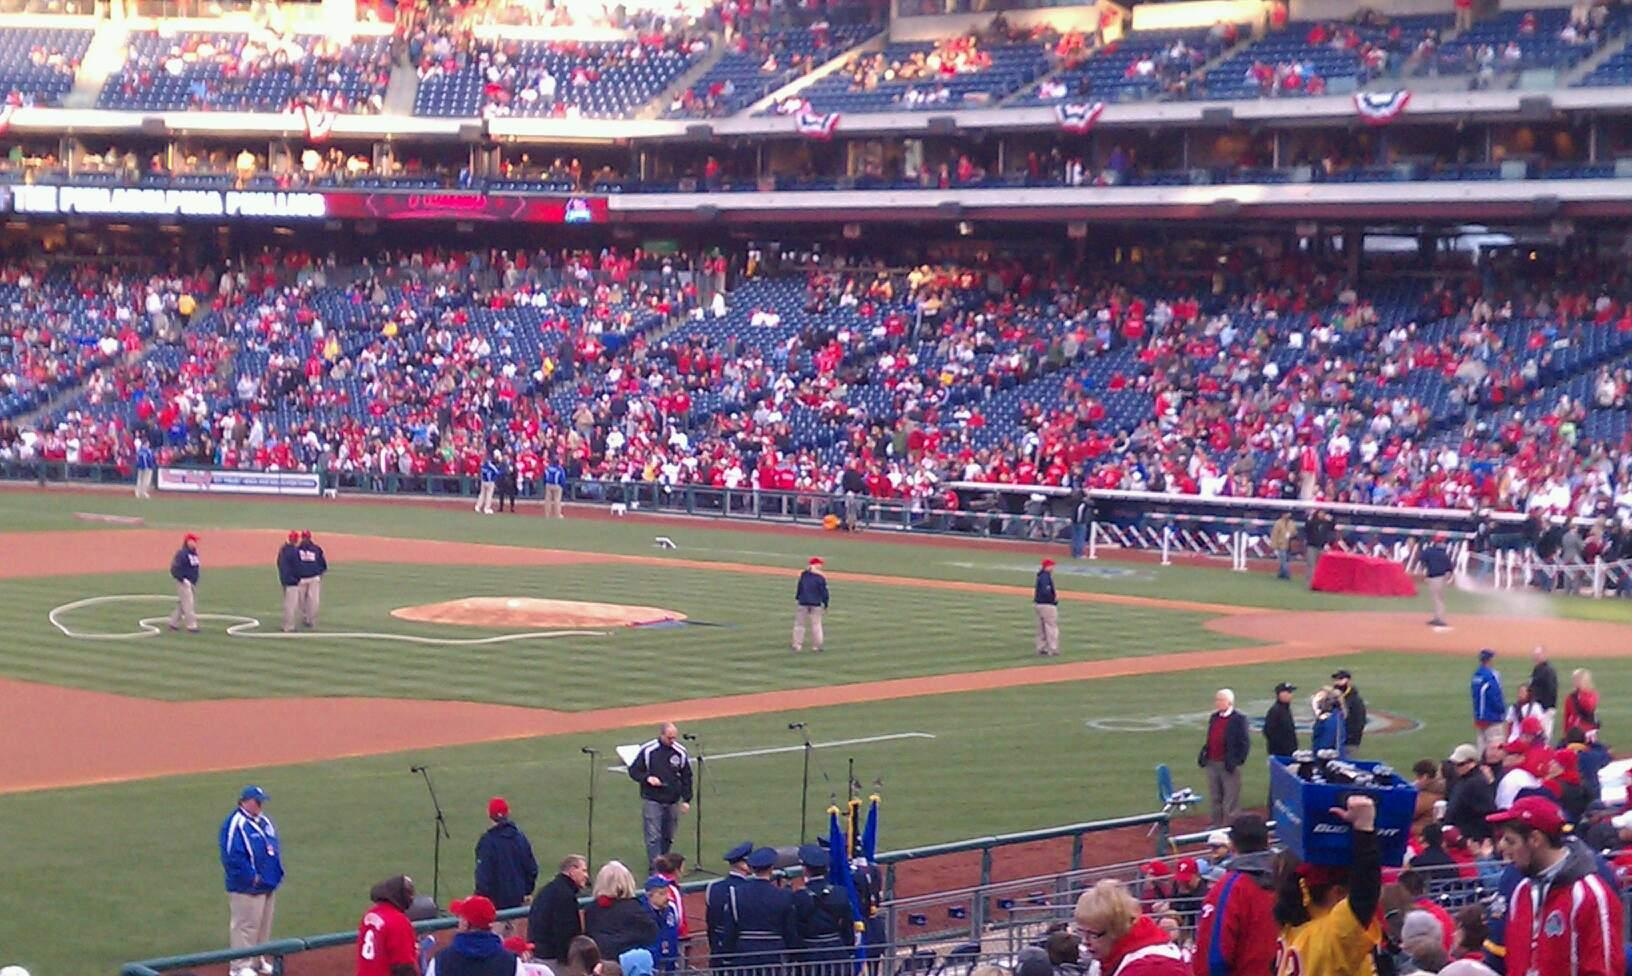 Citizens Bank Park Section 134 Row 30 Seat 18